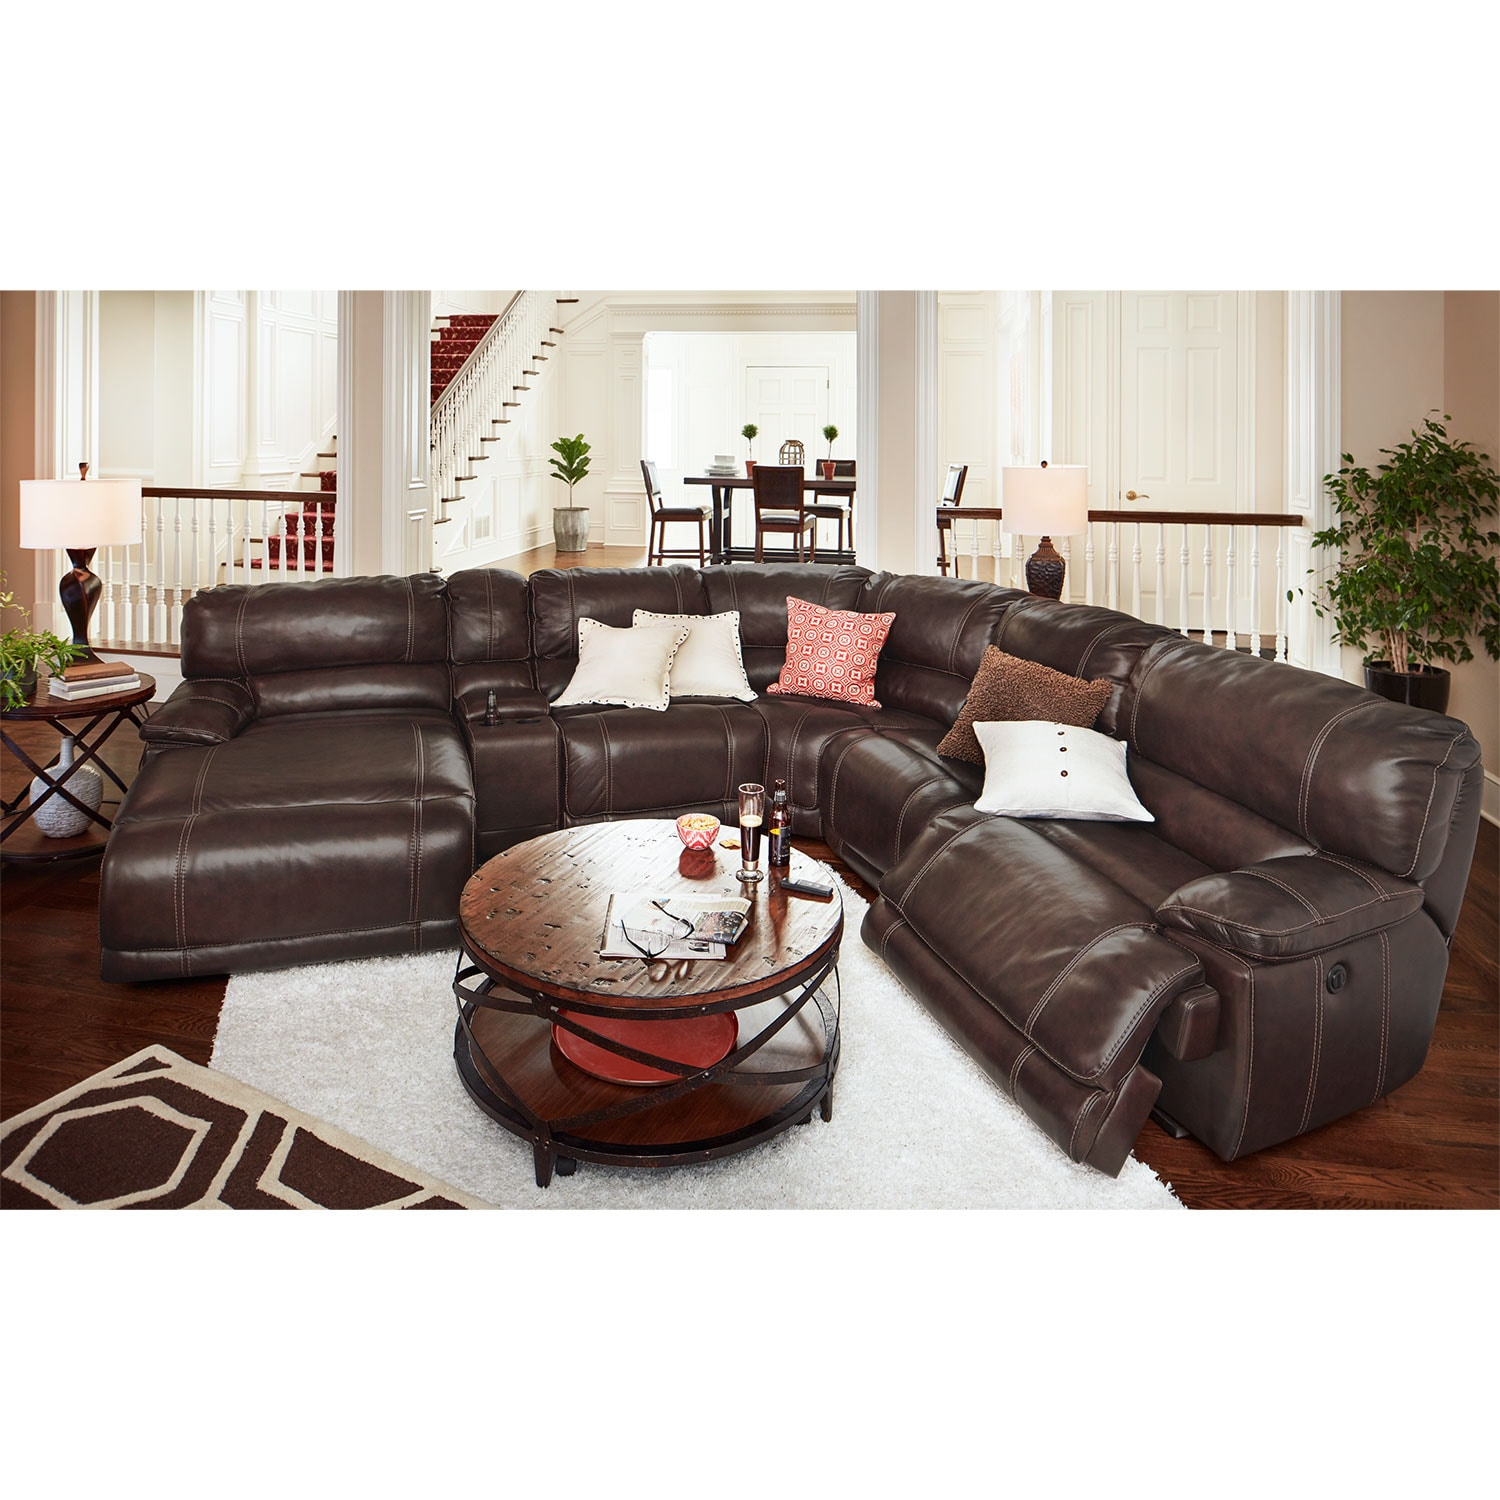 St. Malo 6-Piece Power Reclining Sectional with Left-Facing Chaise - Brown by One80  sc 1 st  American Signature Furniture : american signature sectional - Sectionals, Sofas & Couches